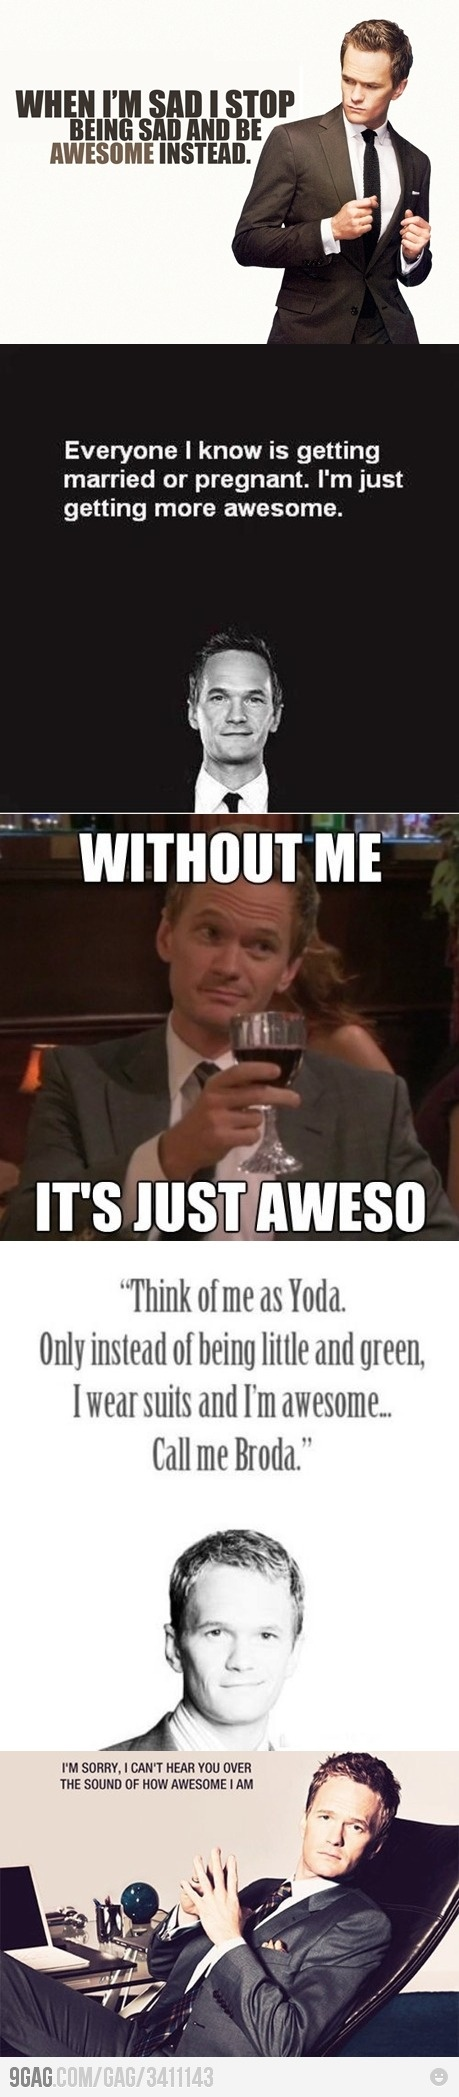 Barney is awesome.